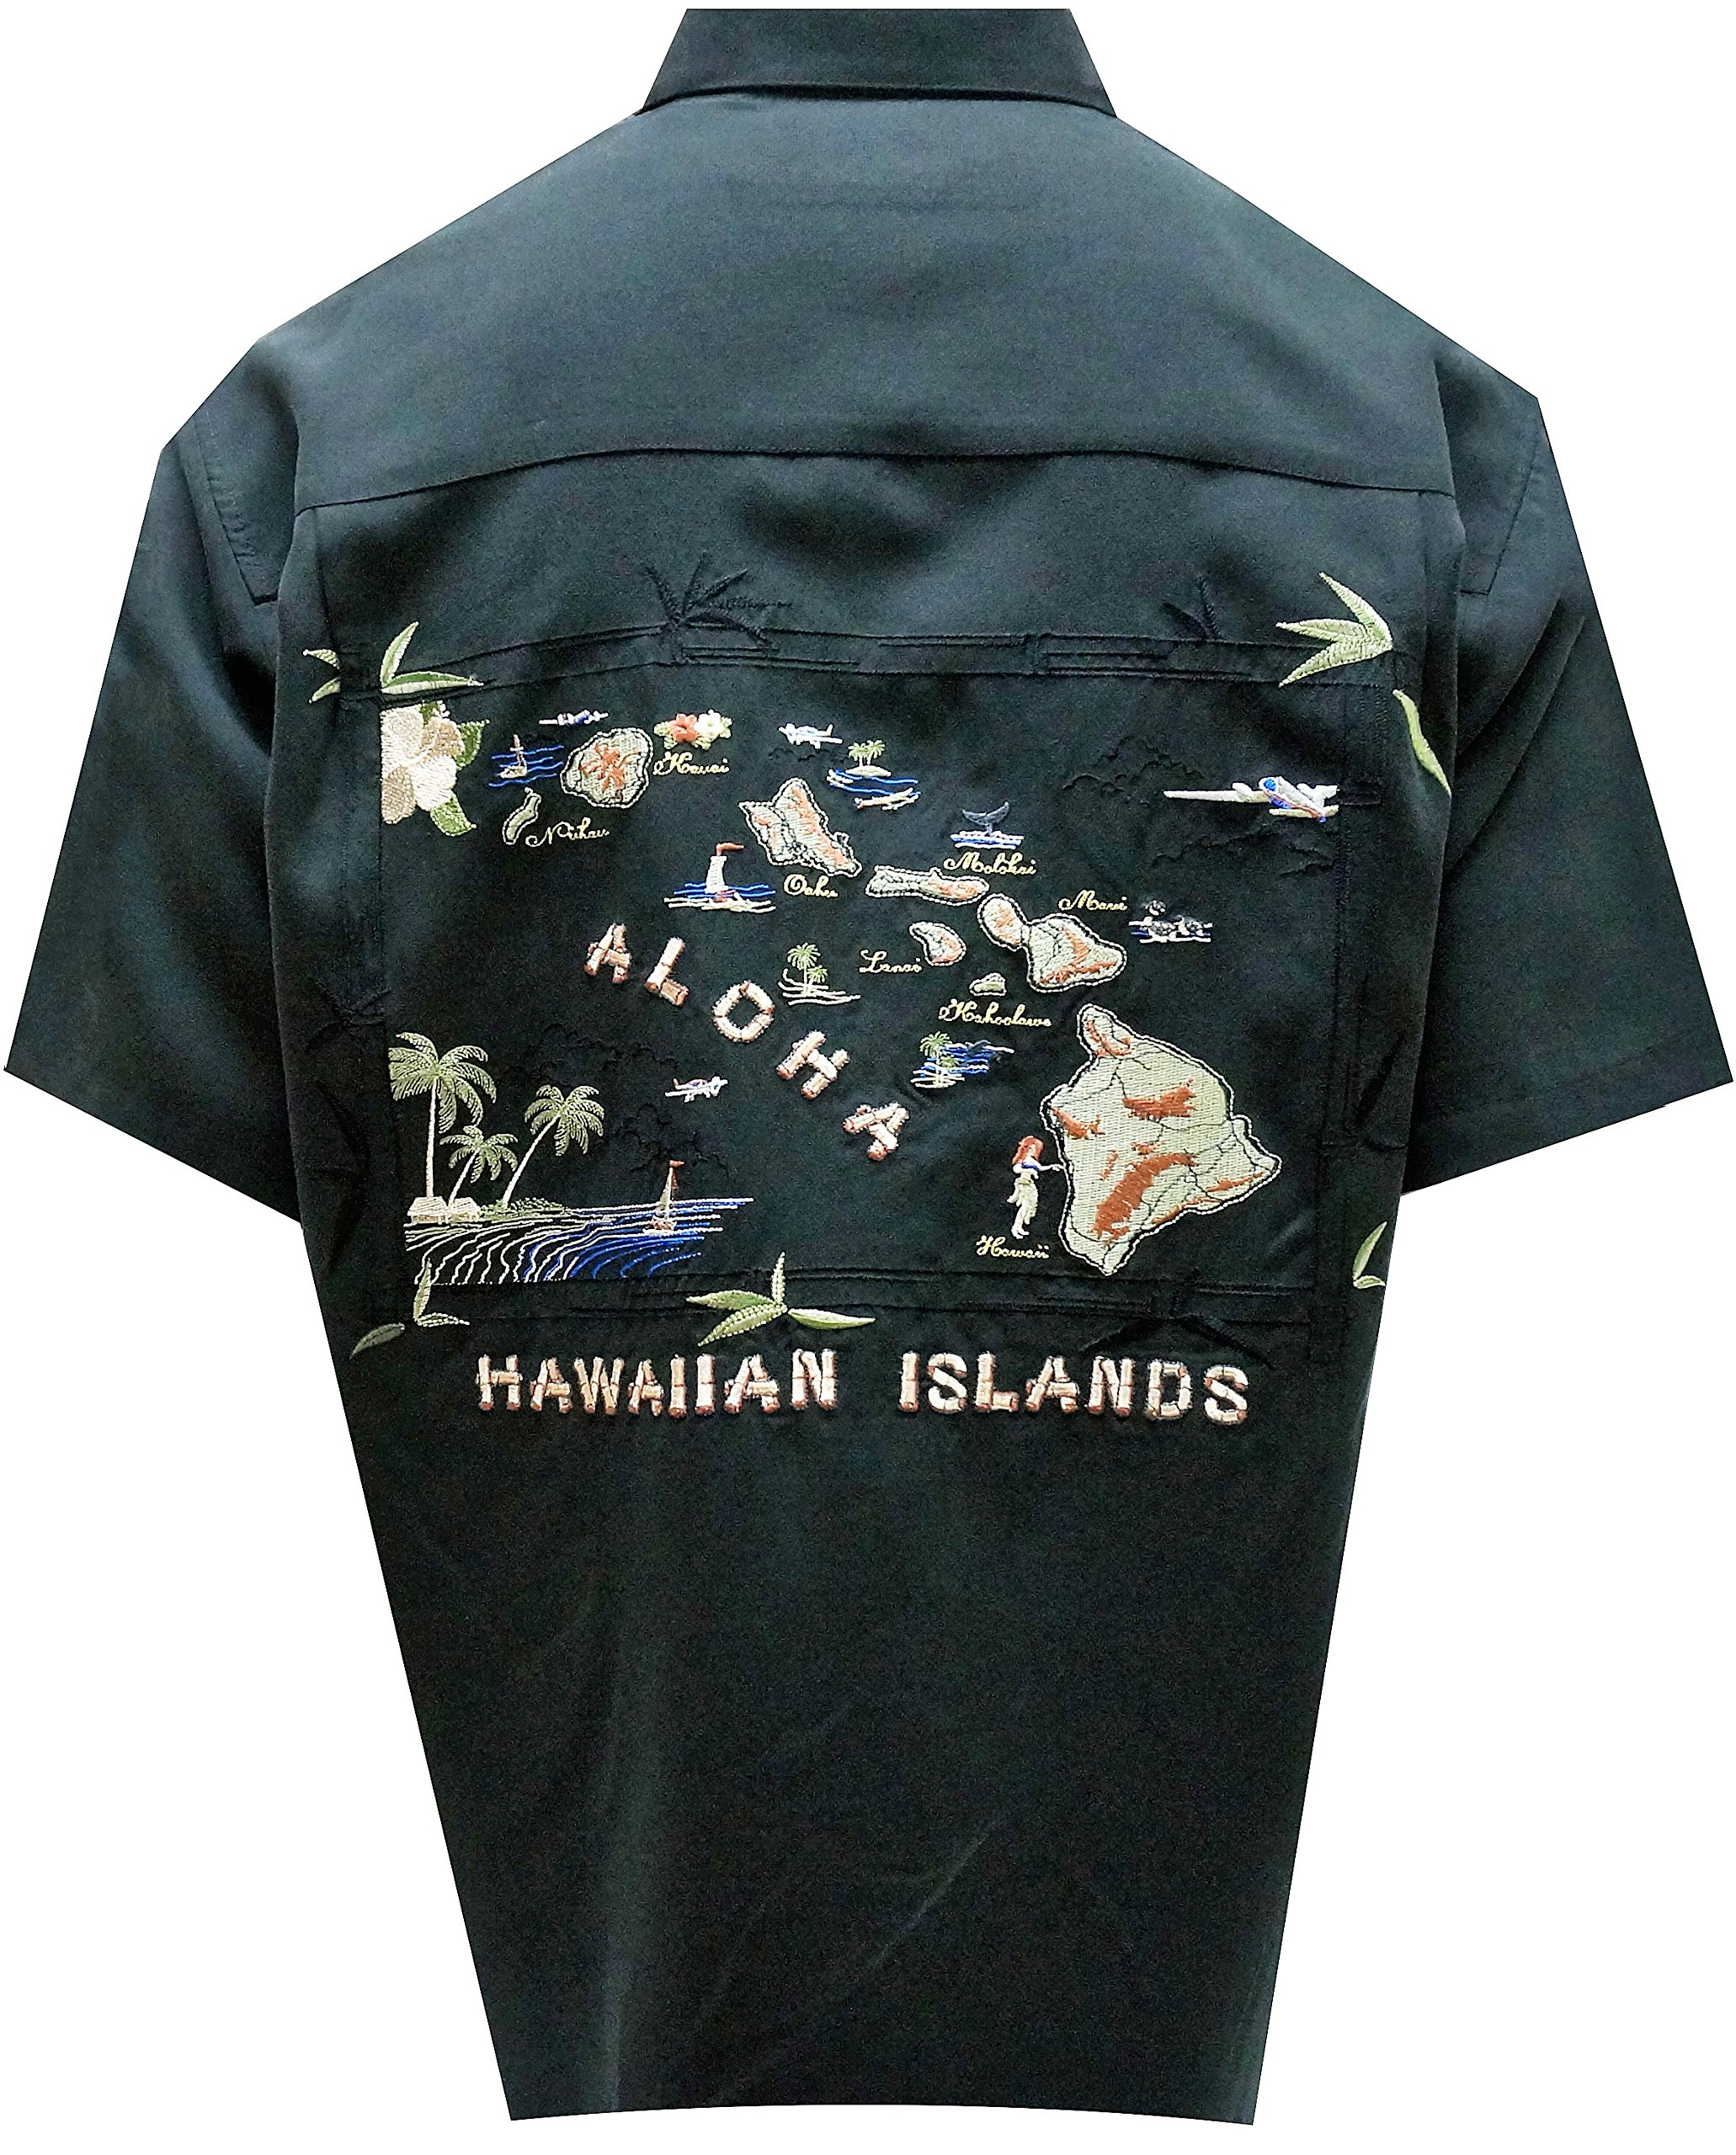 Bamboo Cay Men's Hawaiian Islands, Tropical Embroidered Camp Shirt (X-Large, Black)